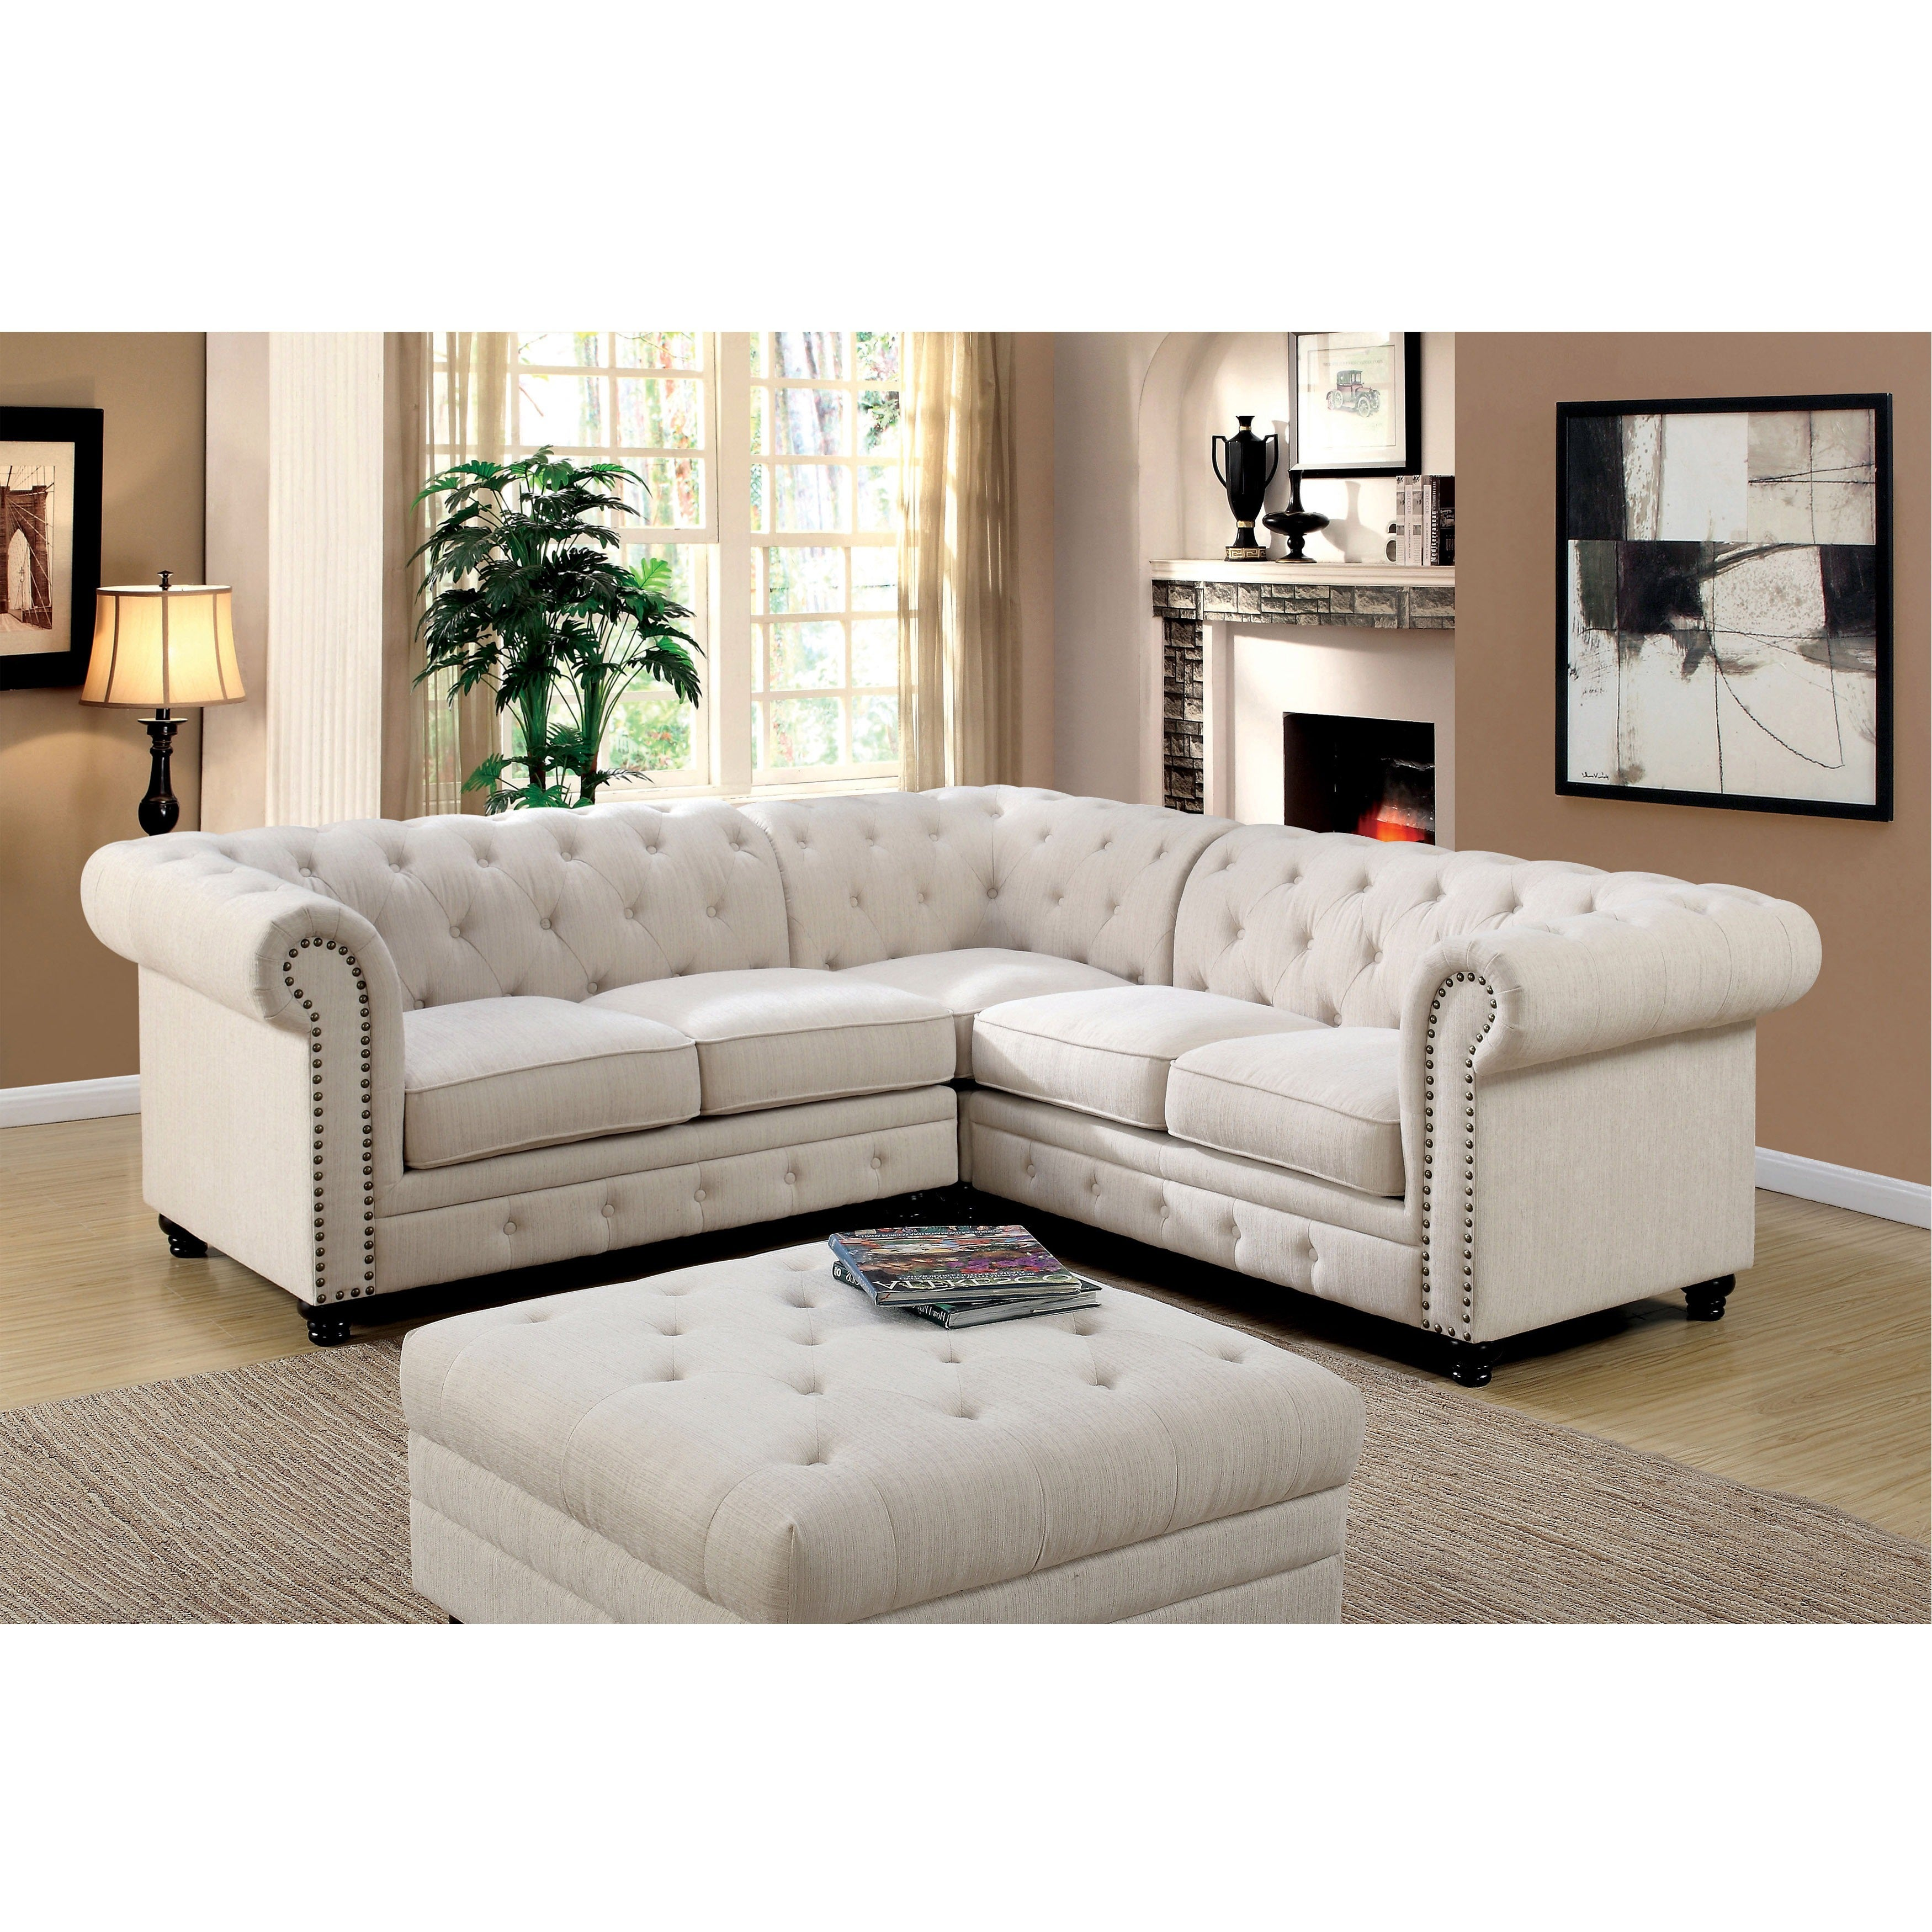 Fabric Tufted Sectional